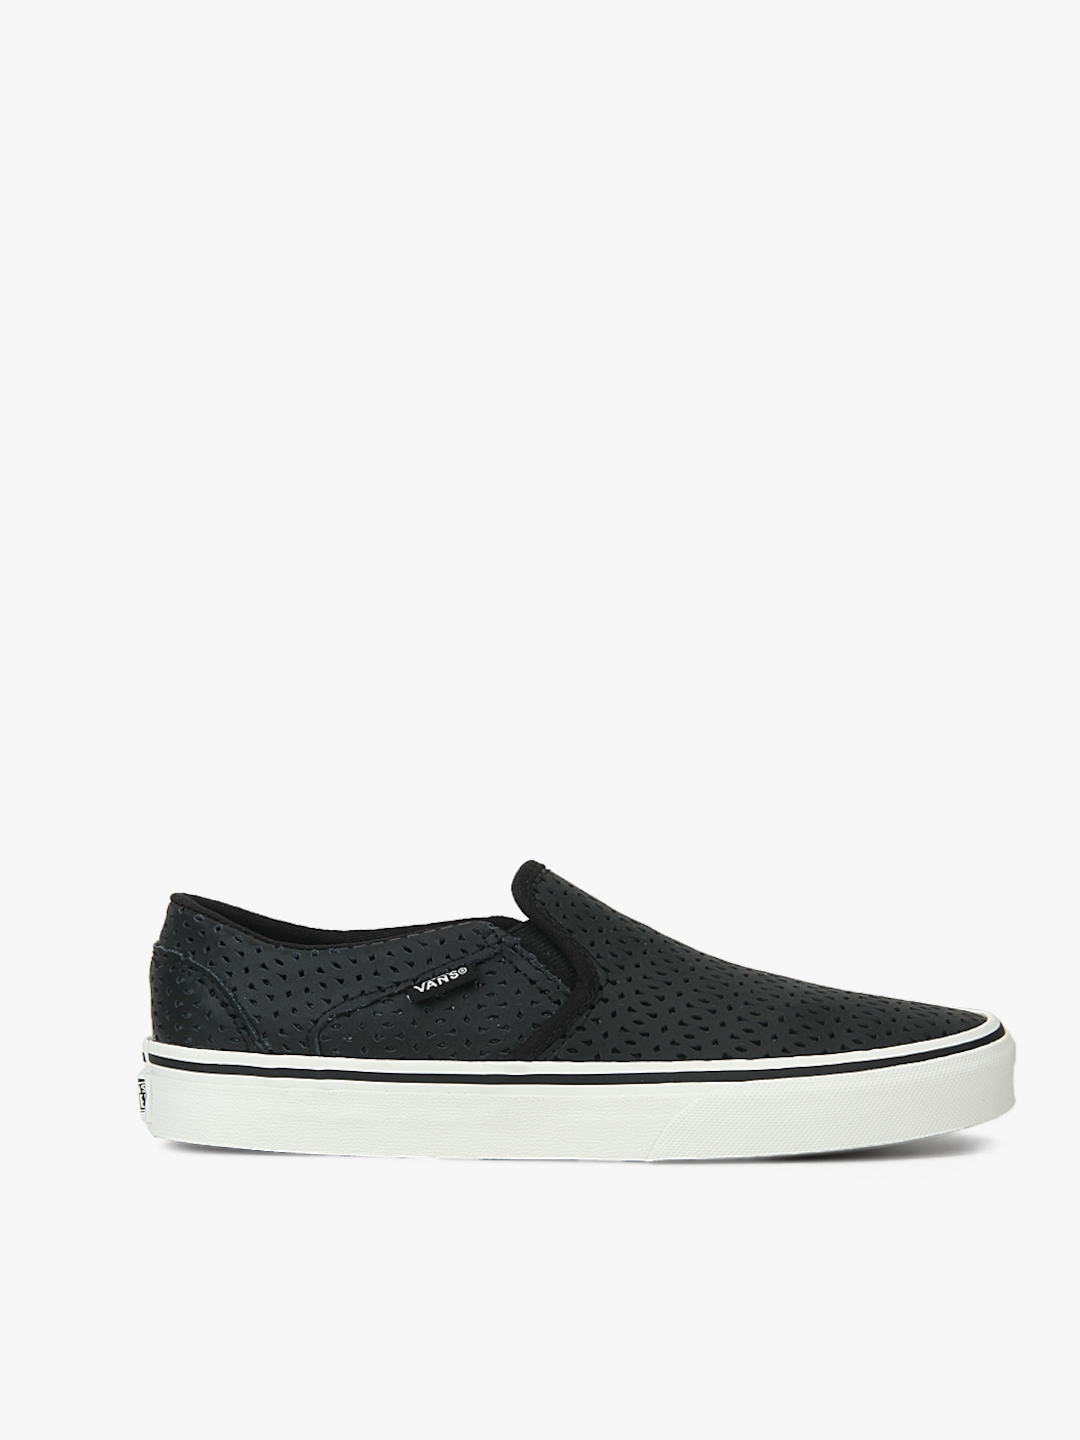 5a8bece3a5 Buy Vans Women Black Asher Leather Slip On Sneakers With Cut Outs ...